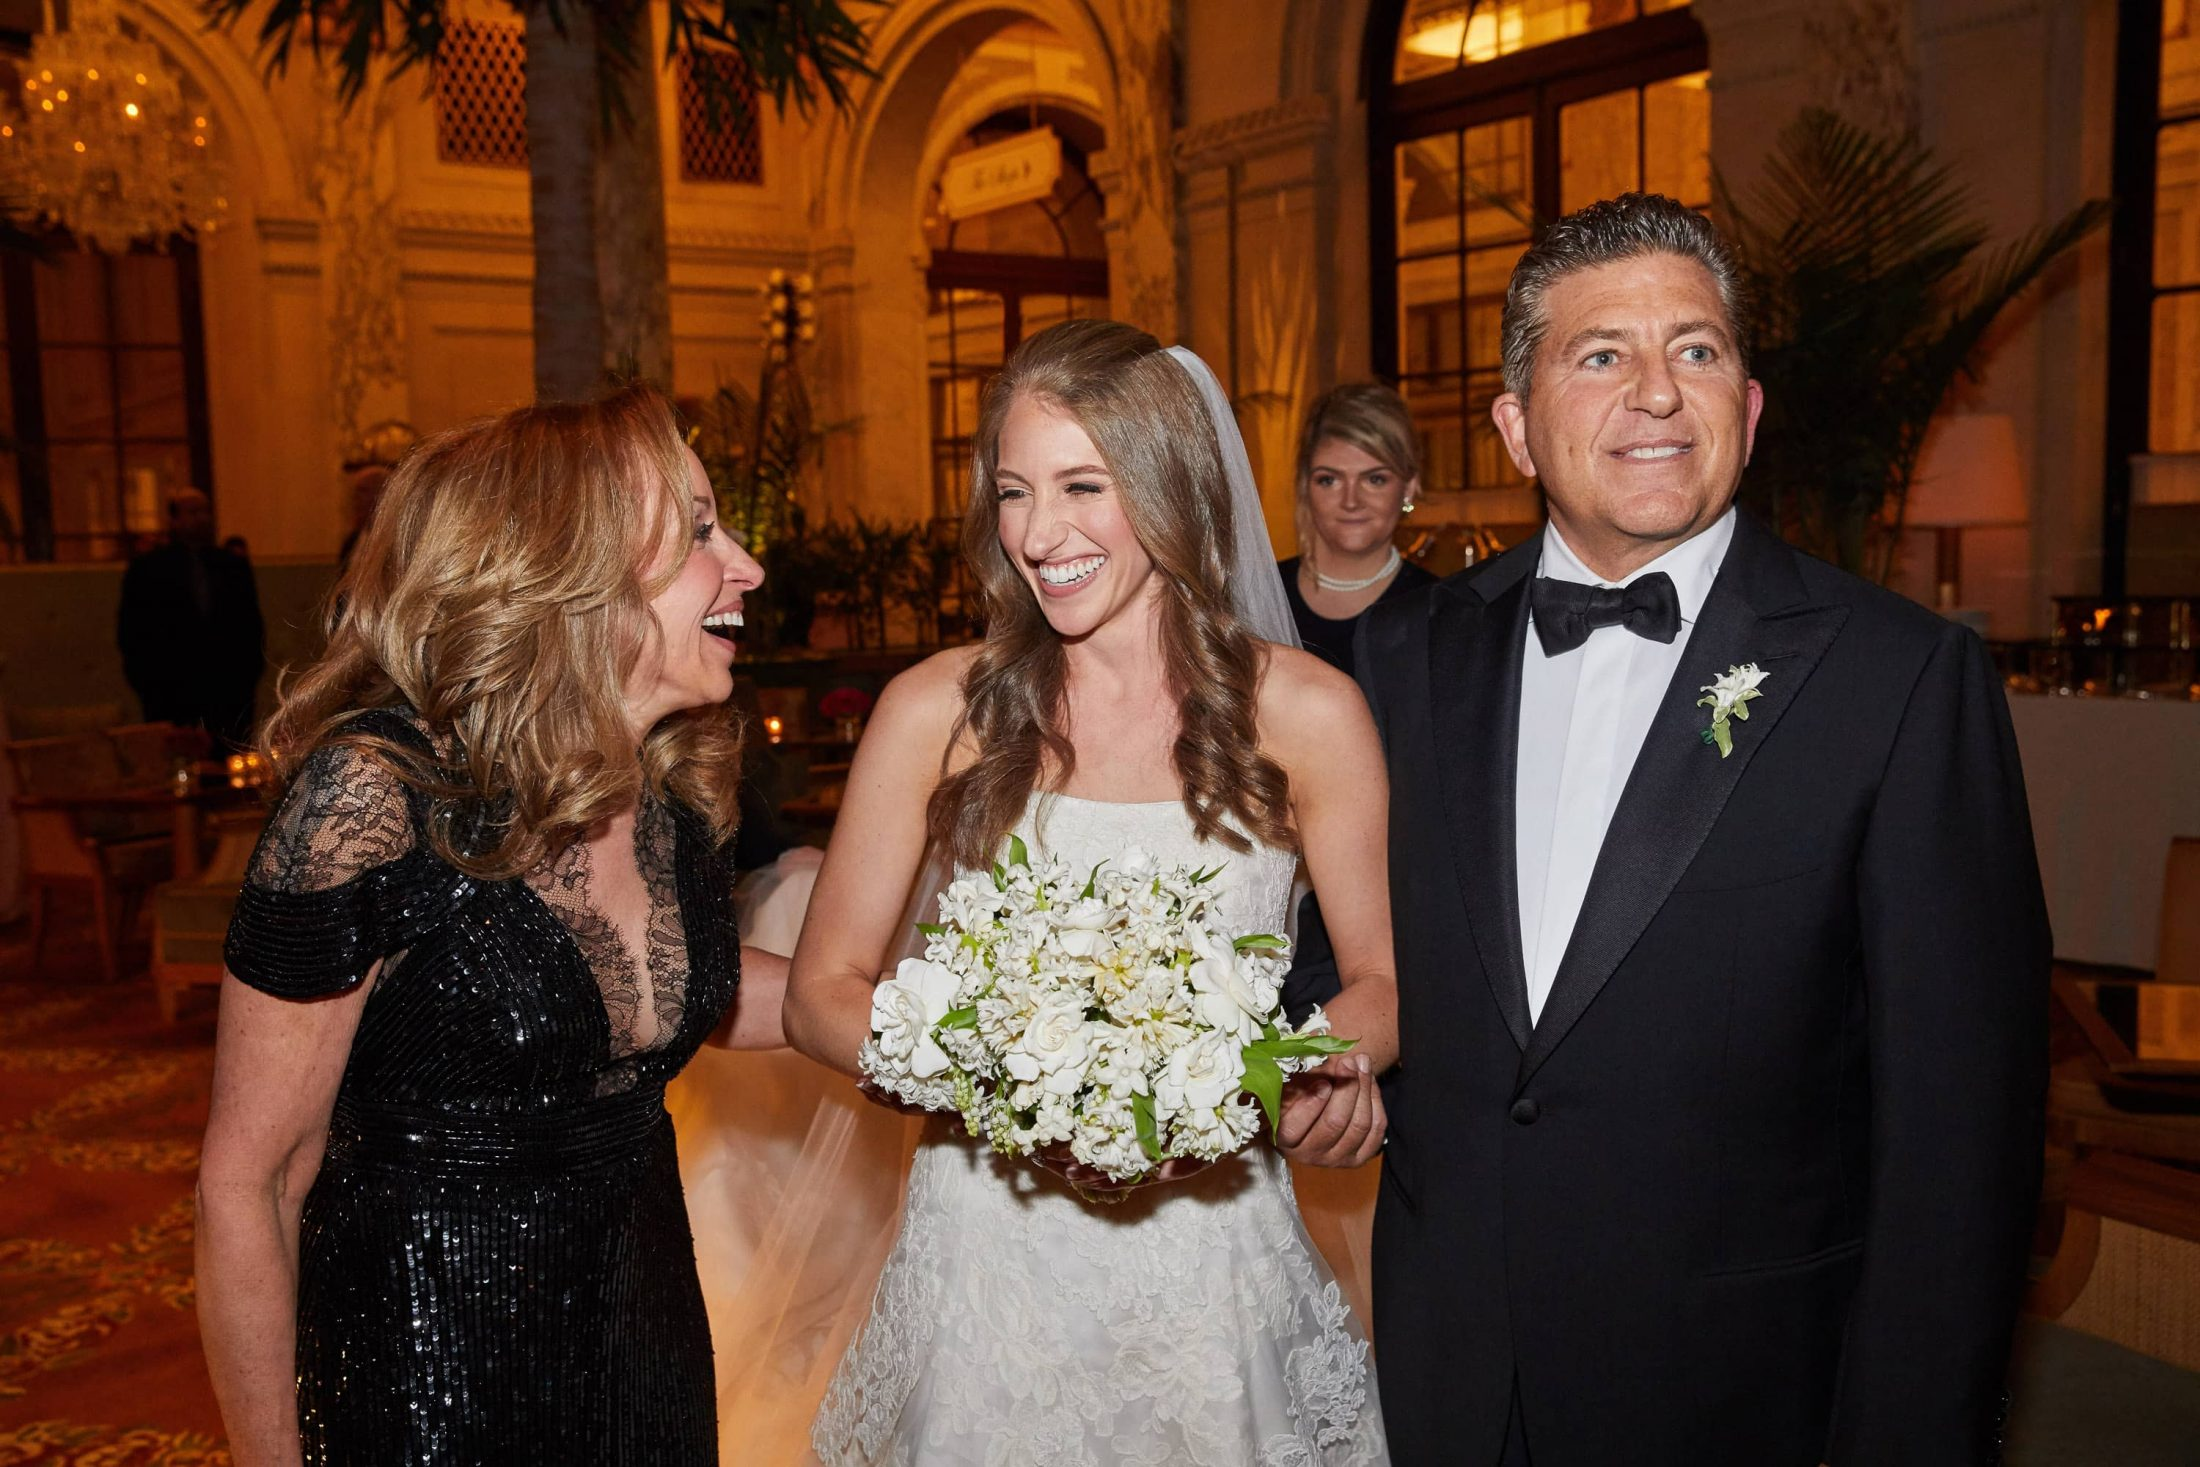 Bride and parents at this classic autumn wedding at The Plaza in NYC | Photo by Christian Oth Studio